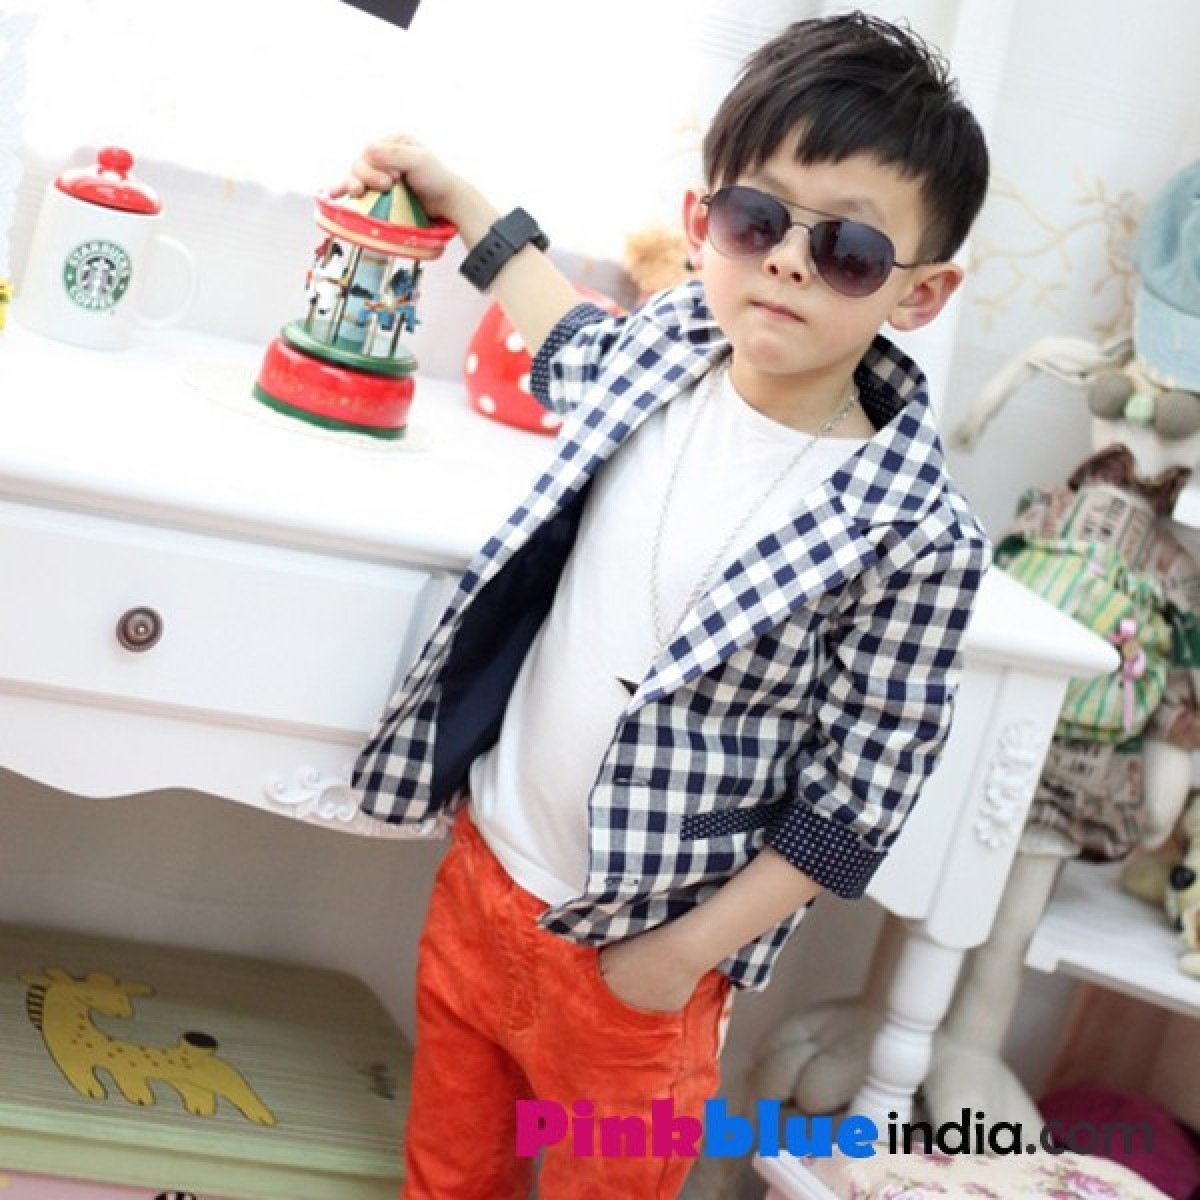 Cool and stylish boys with attitude